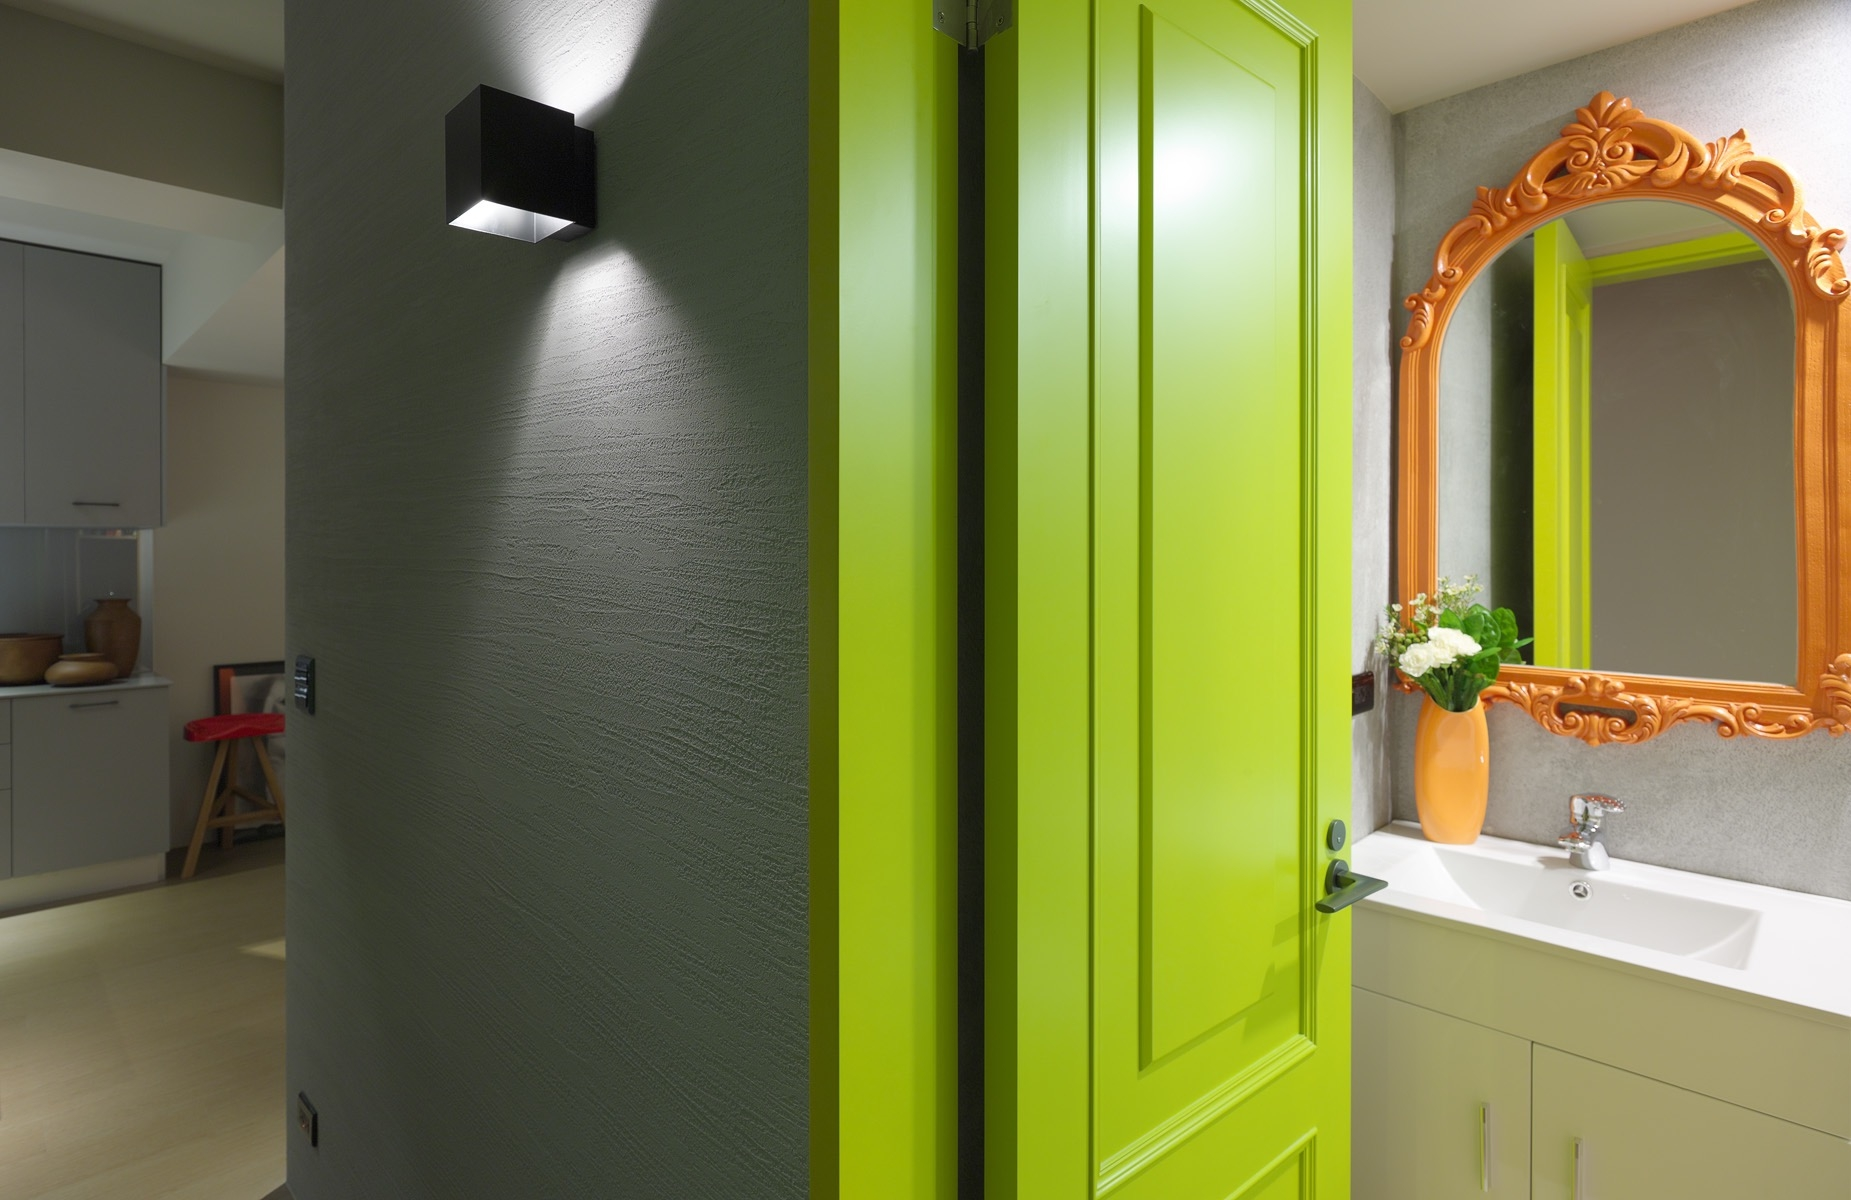 Classy Idea Funky Bathroom Designs 3 Small Spaces Bathrooms Throughout Funky Bathroom Mirror (Image 2 of 15)